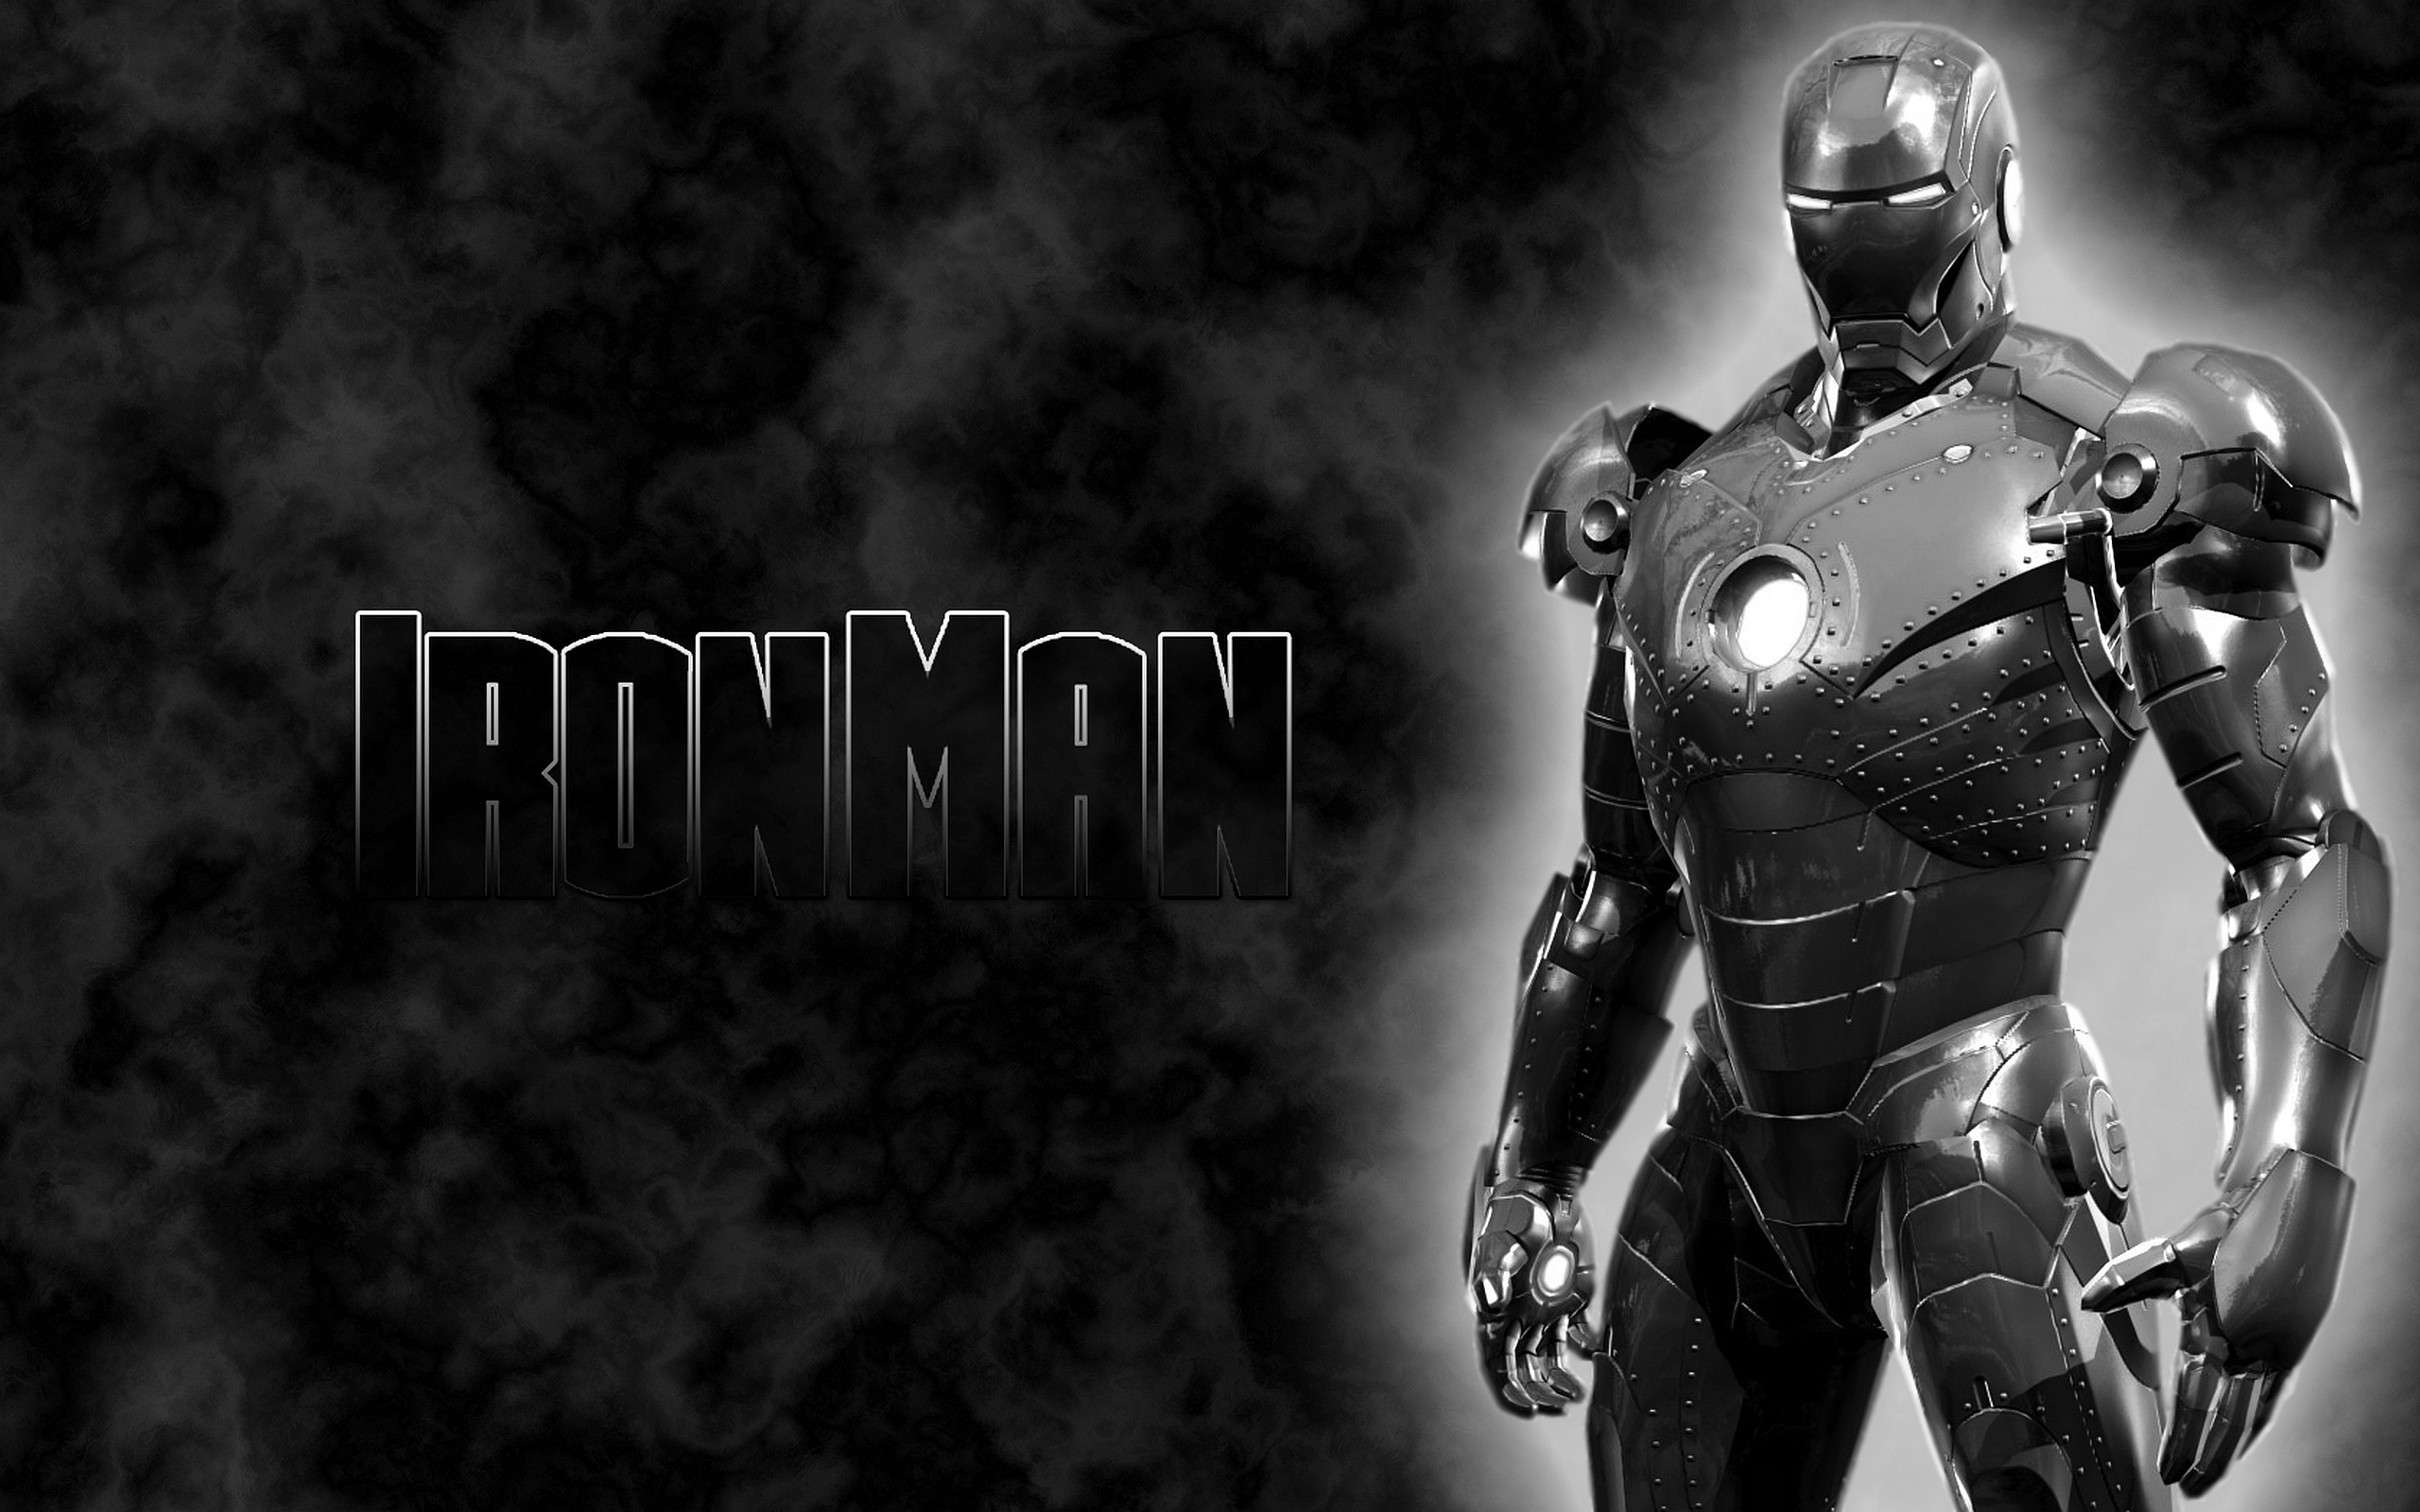 pictures of iron man ironman high quality prints of my pencil works various pictures iron man of